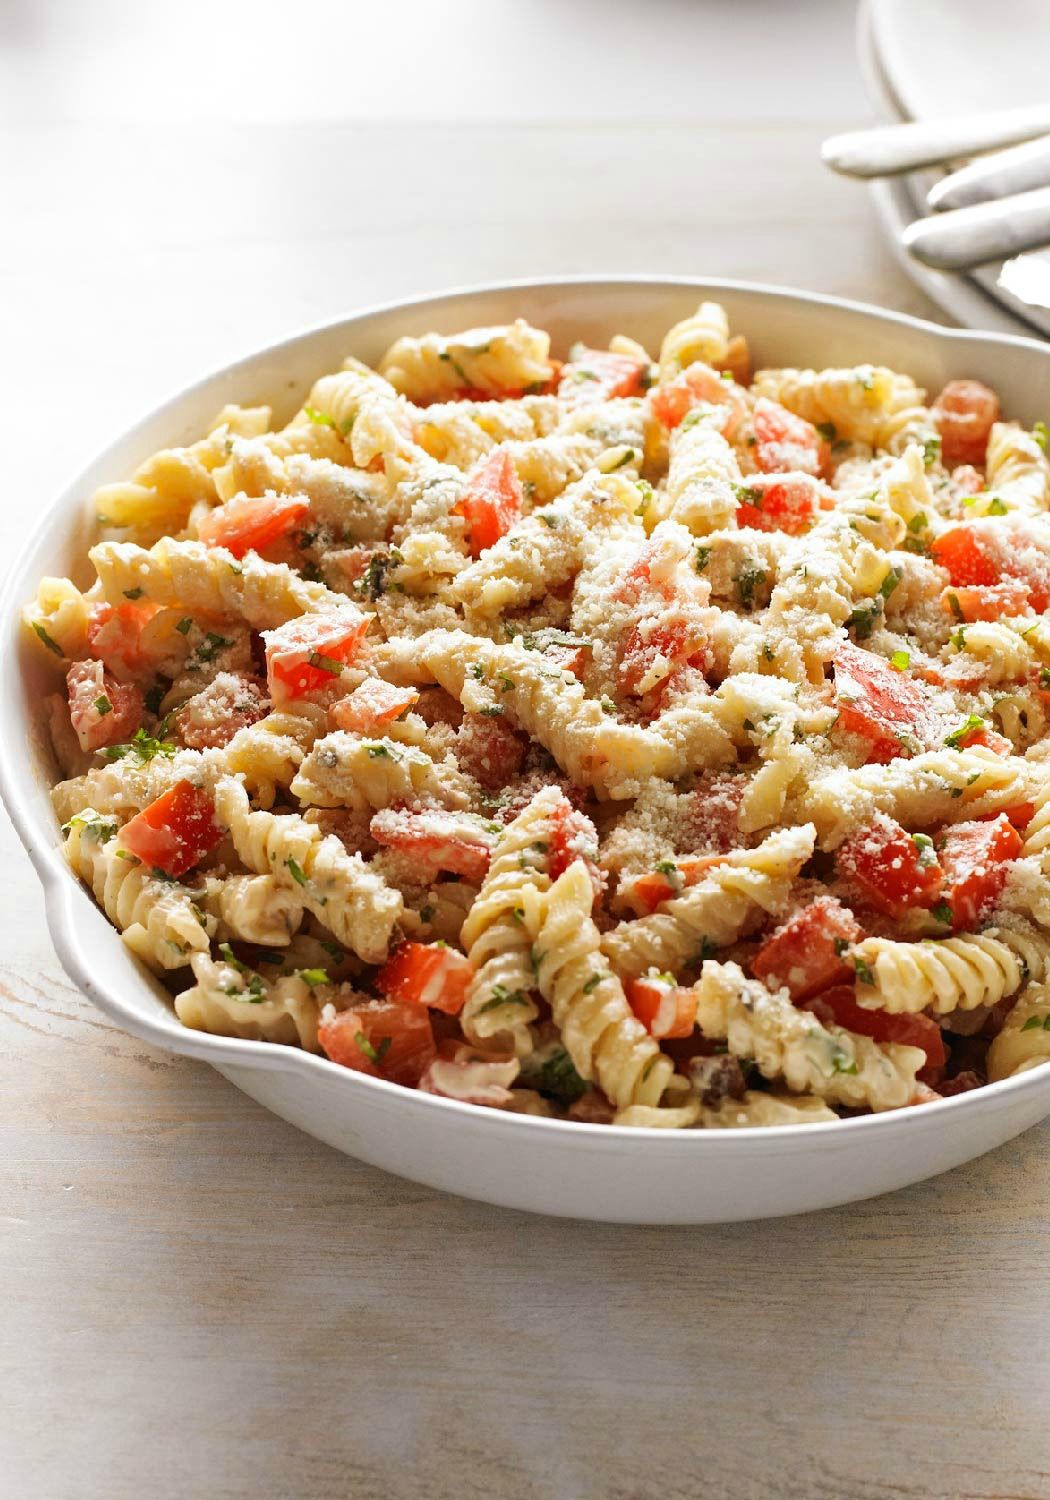 Garden Chicken Pasta Salad  Cheesy Ranch Dressing Flavors This Hearty Salad Of Pasta, Broccoli, Peppers, And Precooked Chicken It -7201